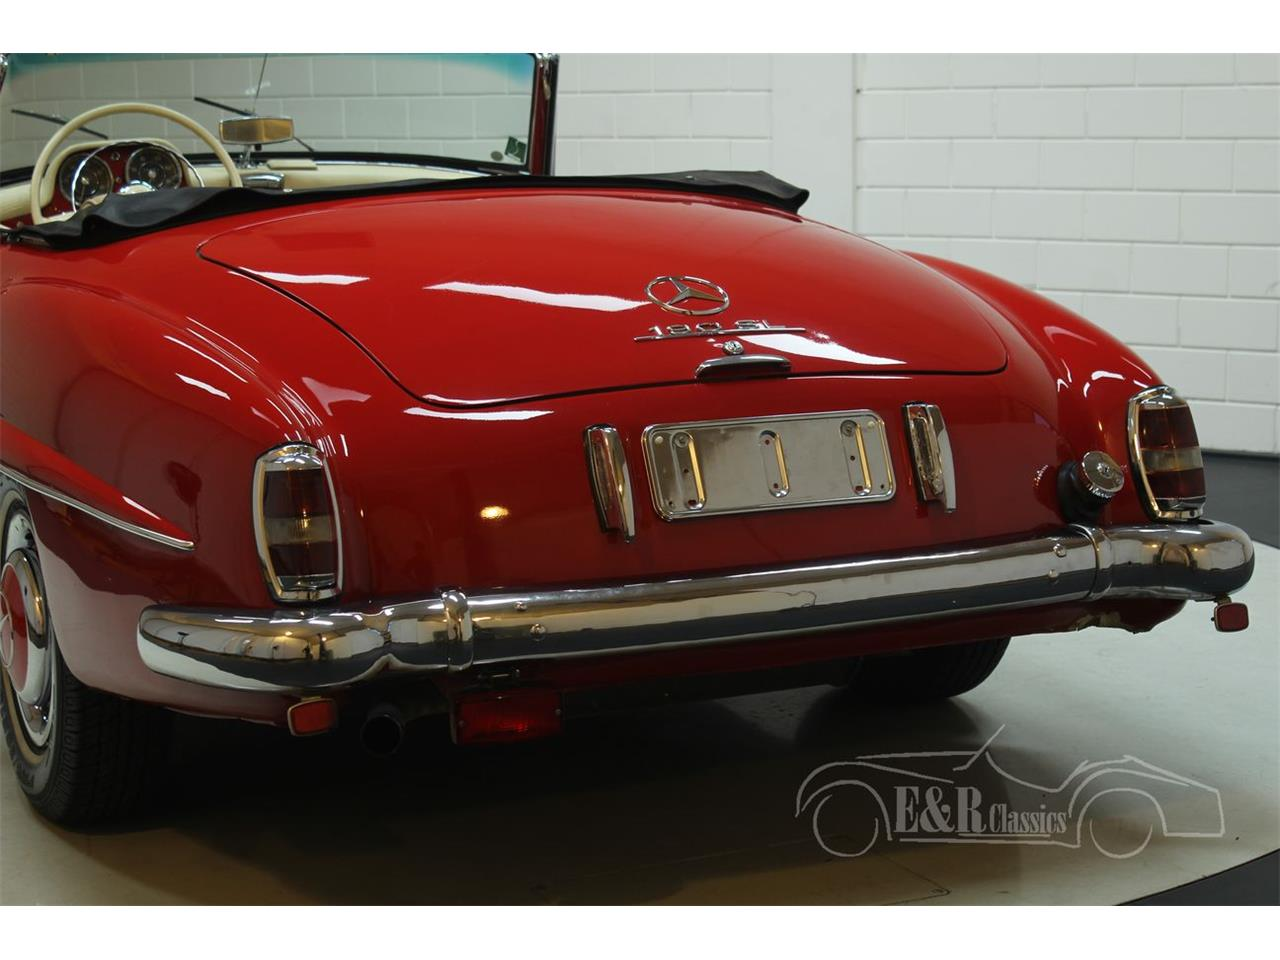 Large Picture of Classic '56 190SL located in - Keine Angabe - - $118,450.00 Offered by E & R Classics - PH44